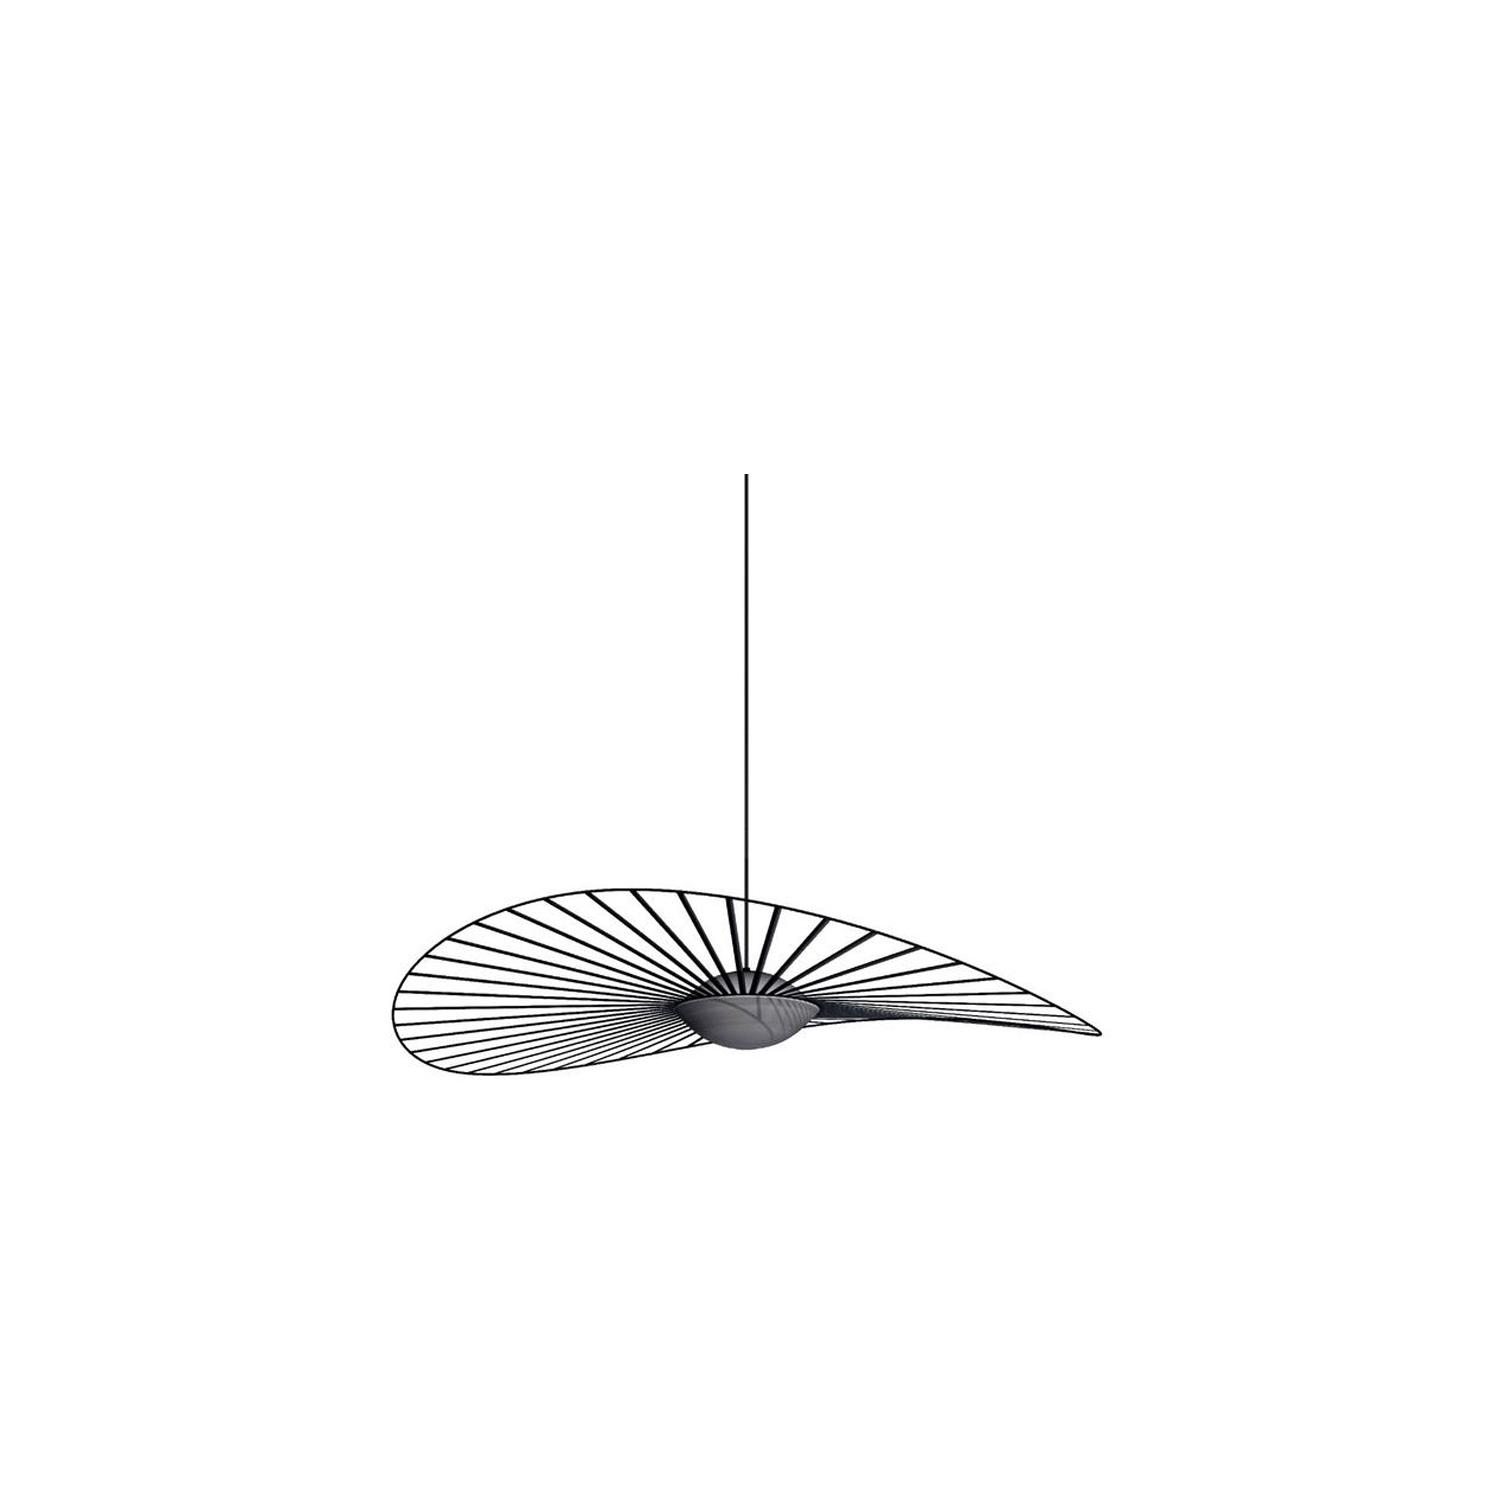 Vertigo Nova Pendant Light - Petite Friture and Constance Guisset, an inseparable duo with lofty ambitions, have started a new chapter of the Vertigo story with Vertigo Nova: a highly technical piece of sophisticated design.